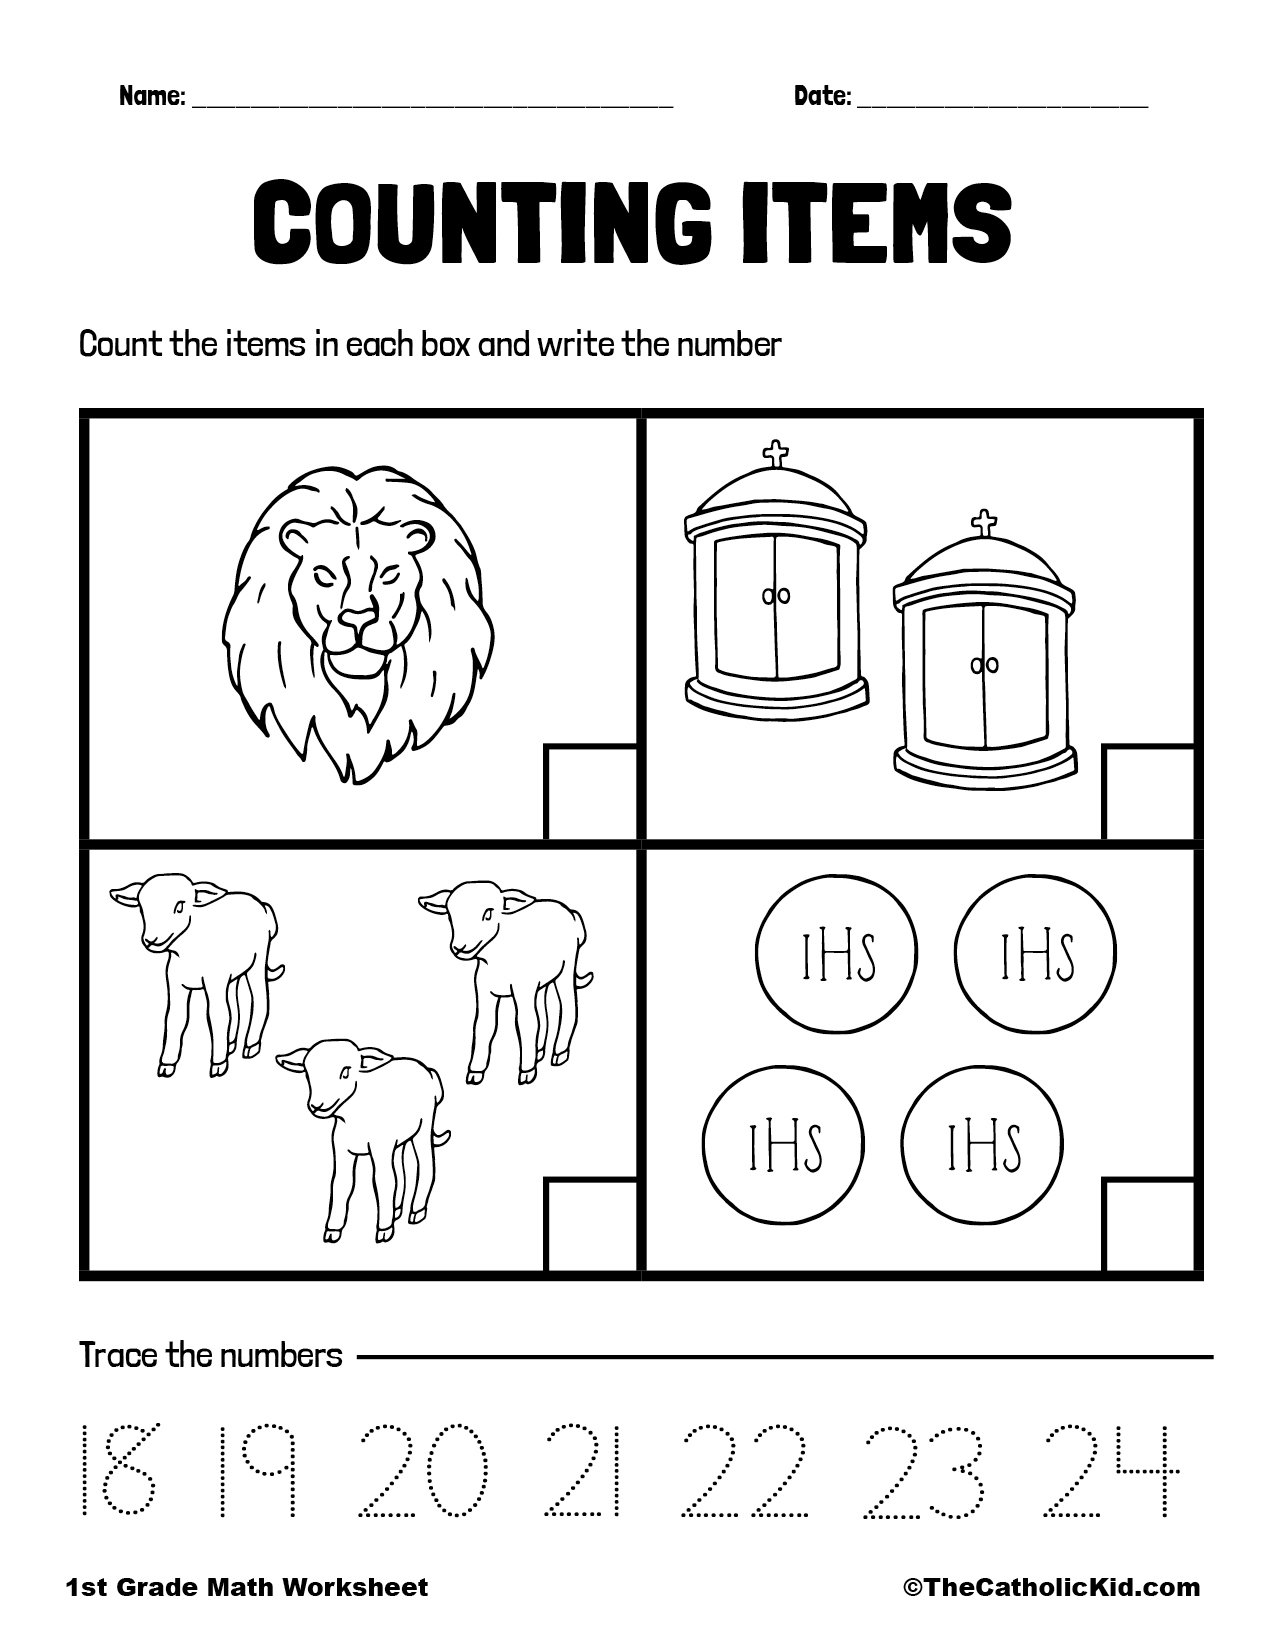 Counting Review - 1st Grade Math Worksheet Catholic